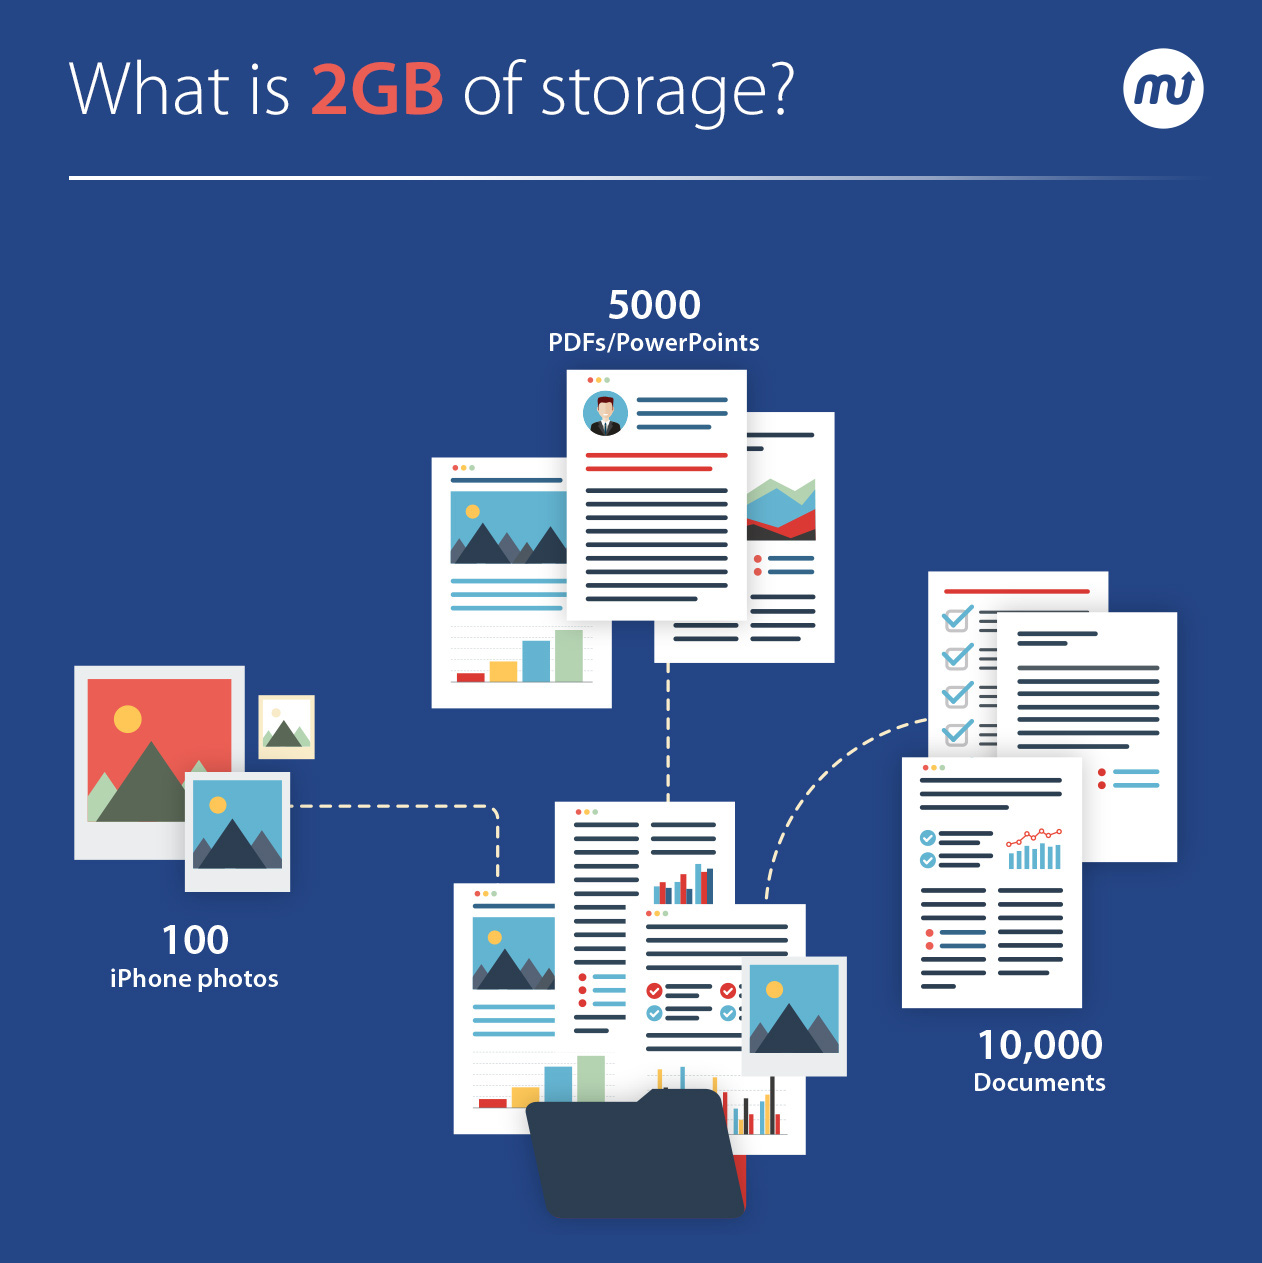 What is 2GB of storage?